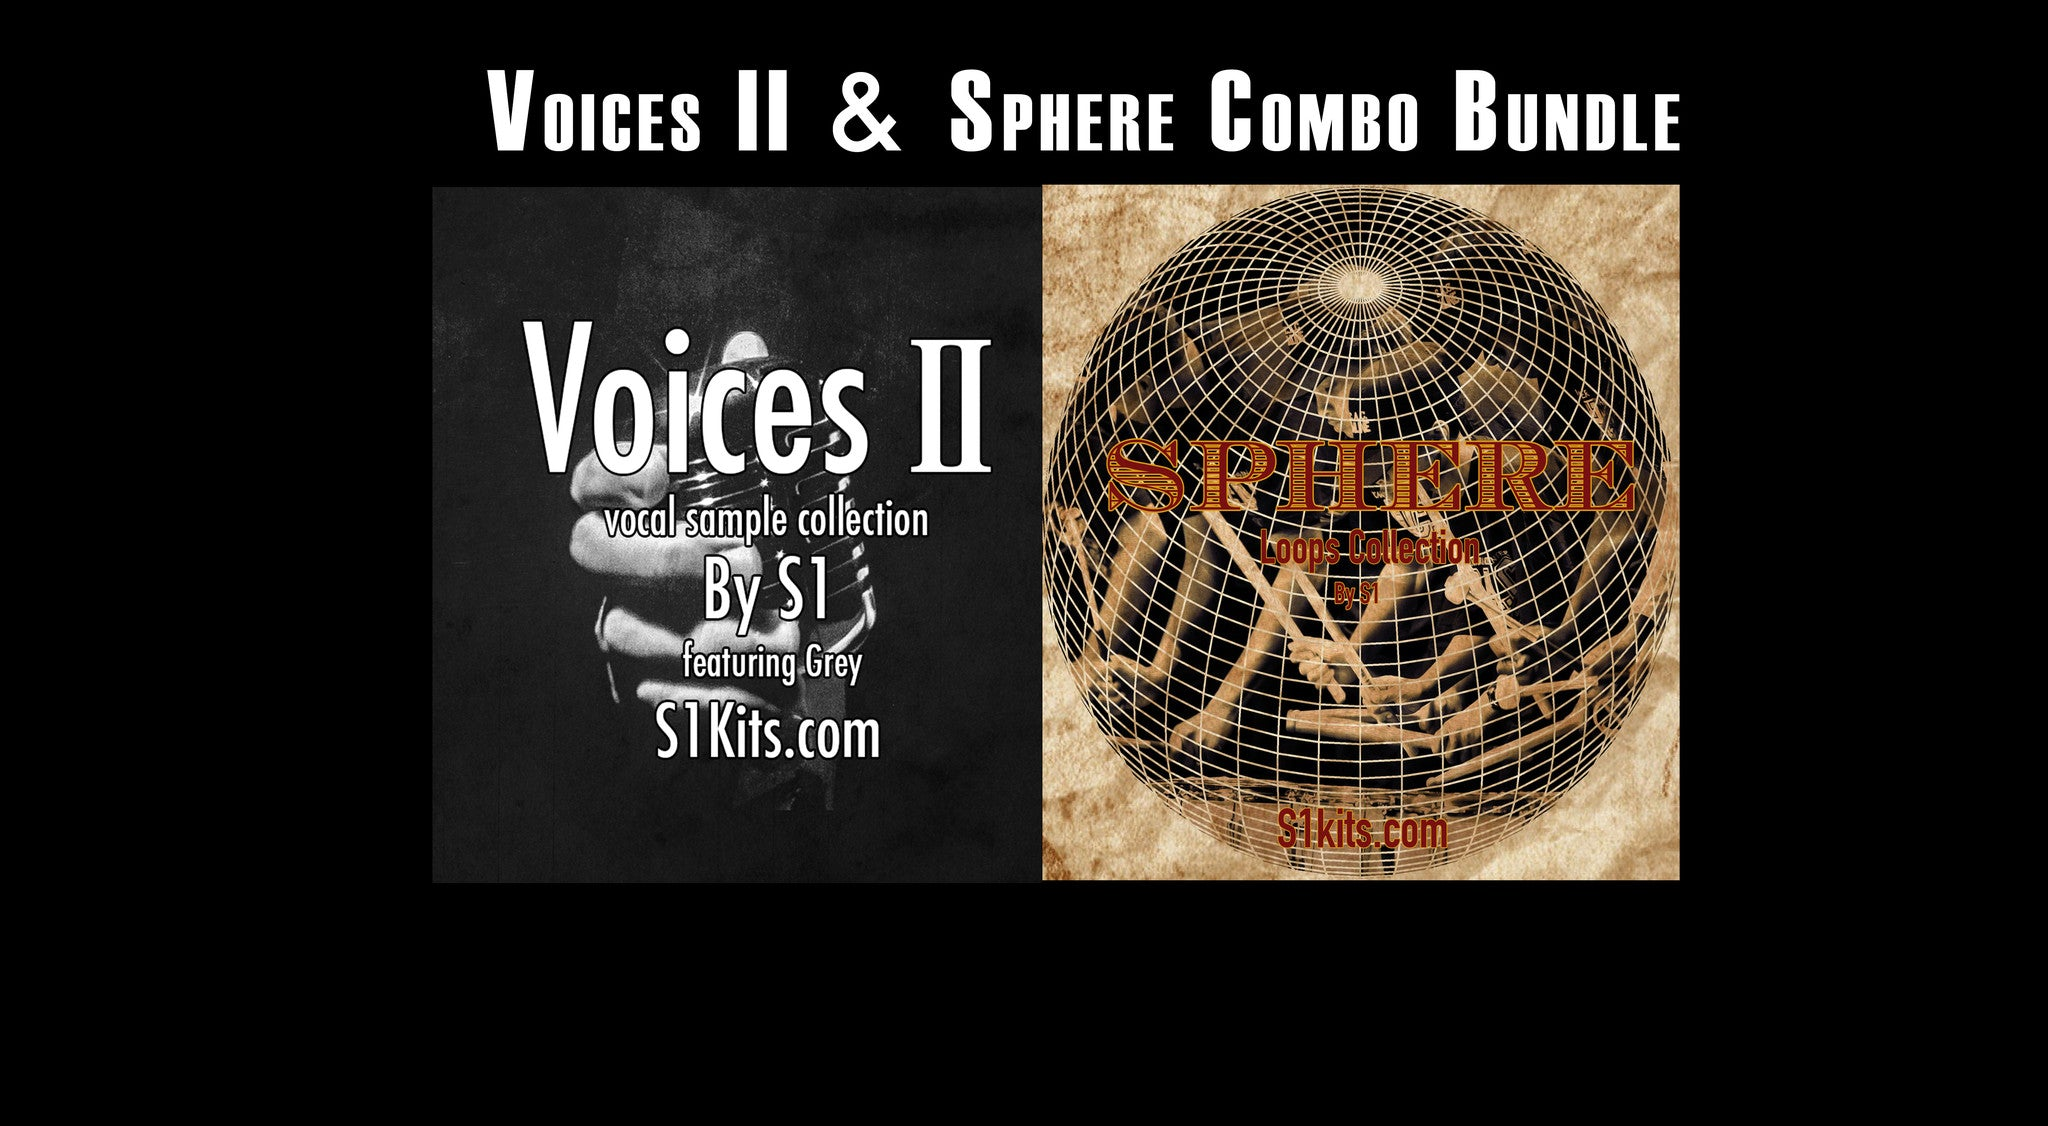 Voices II & Sphere Combo Bundle